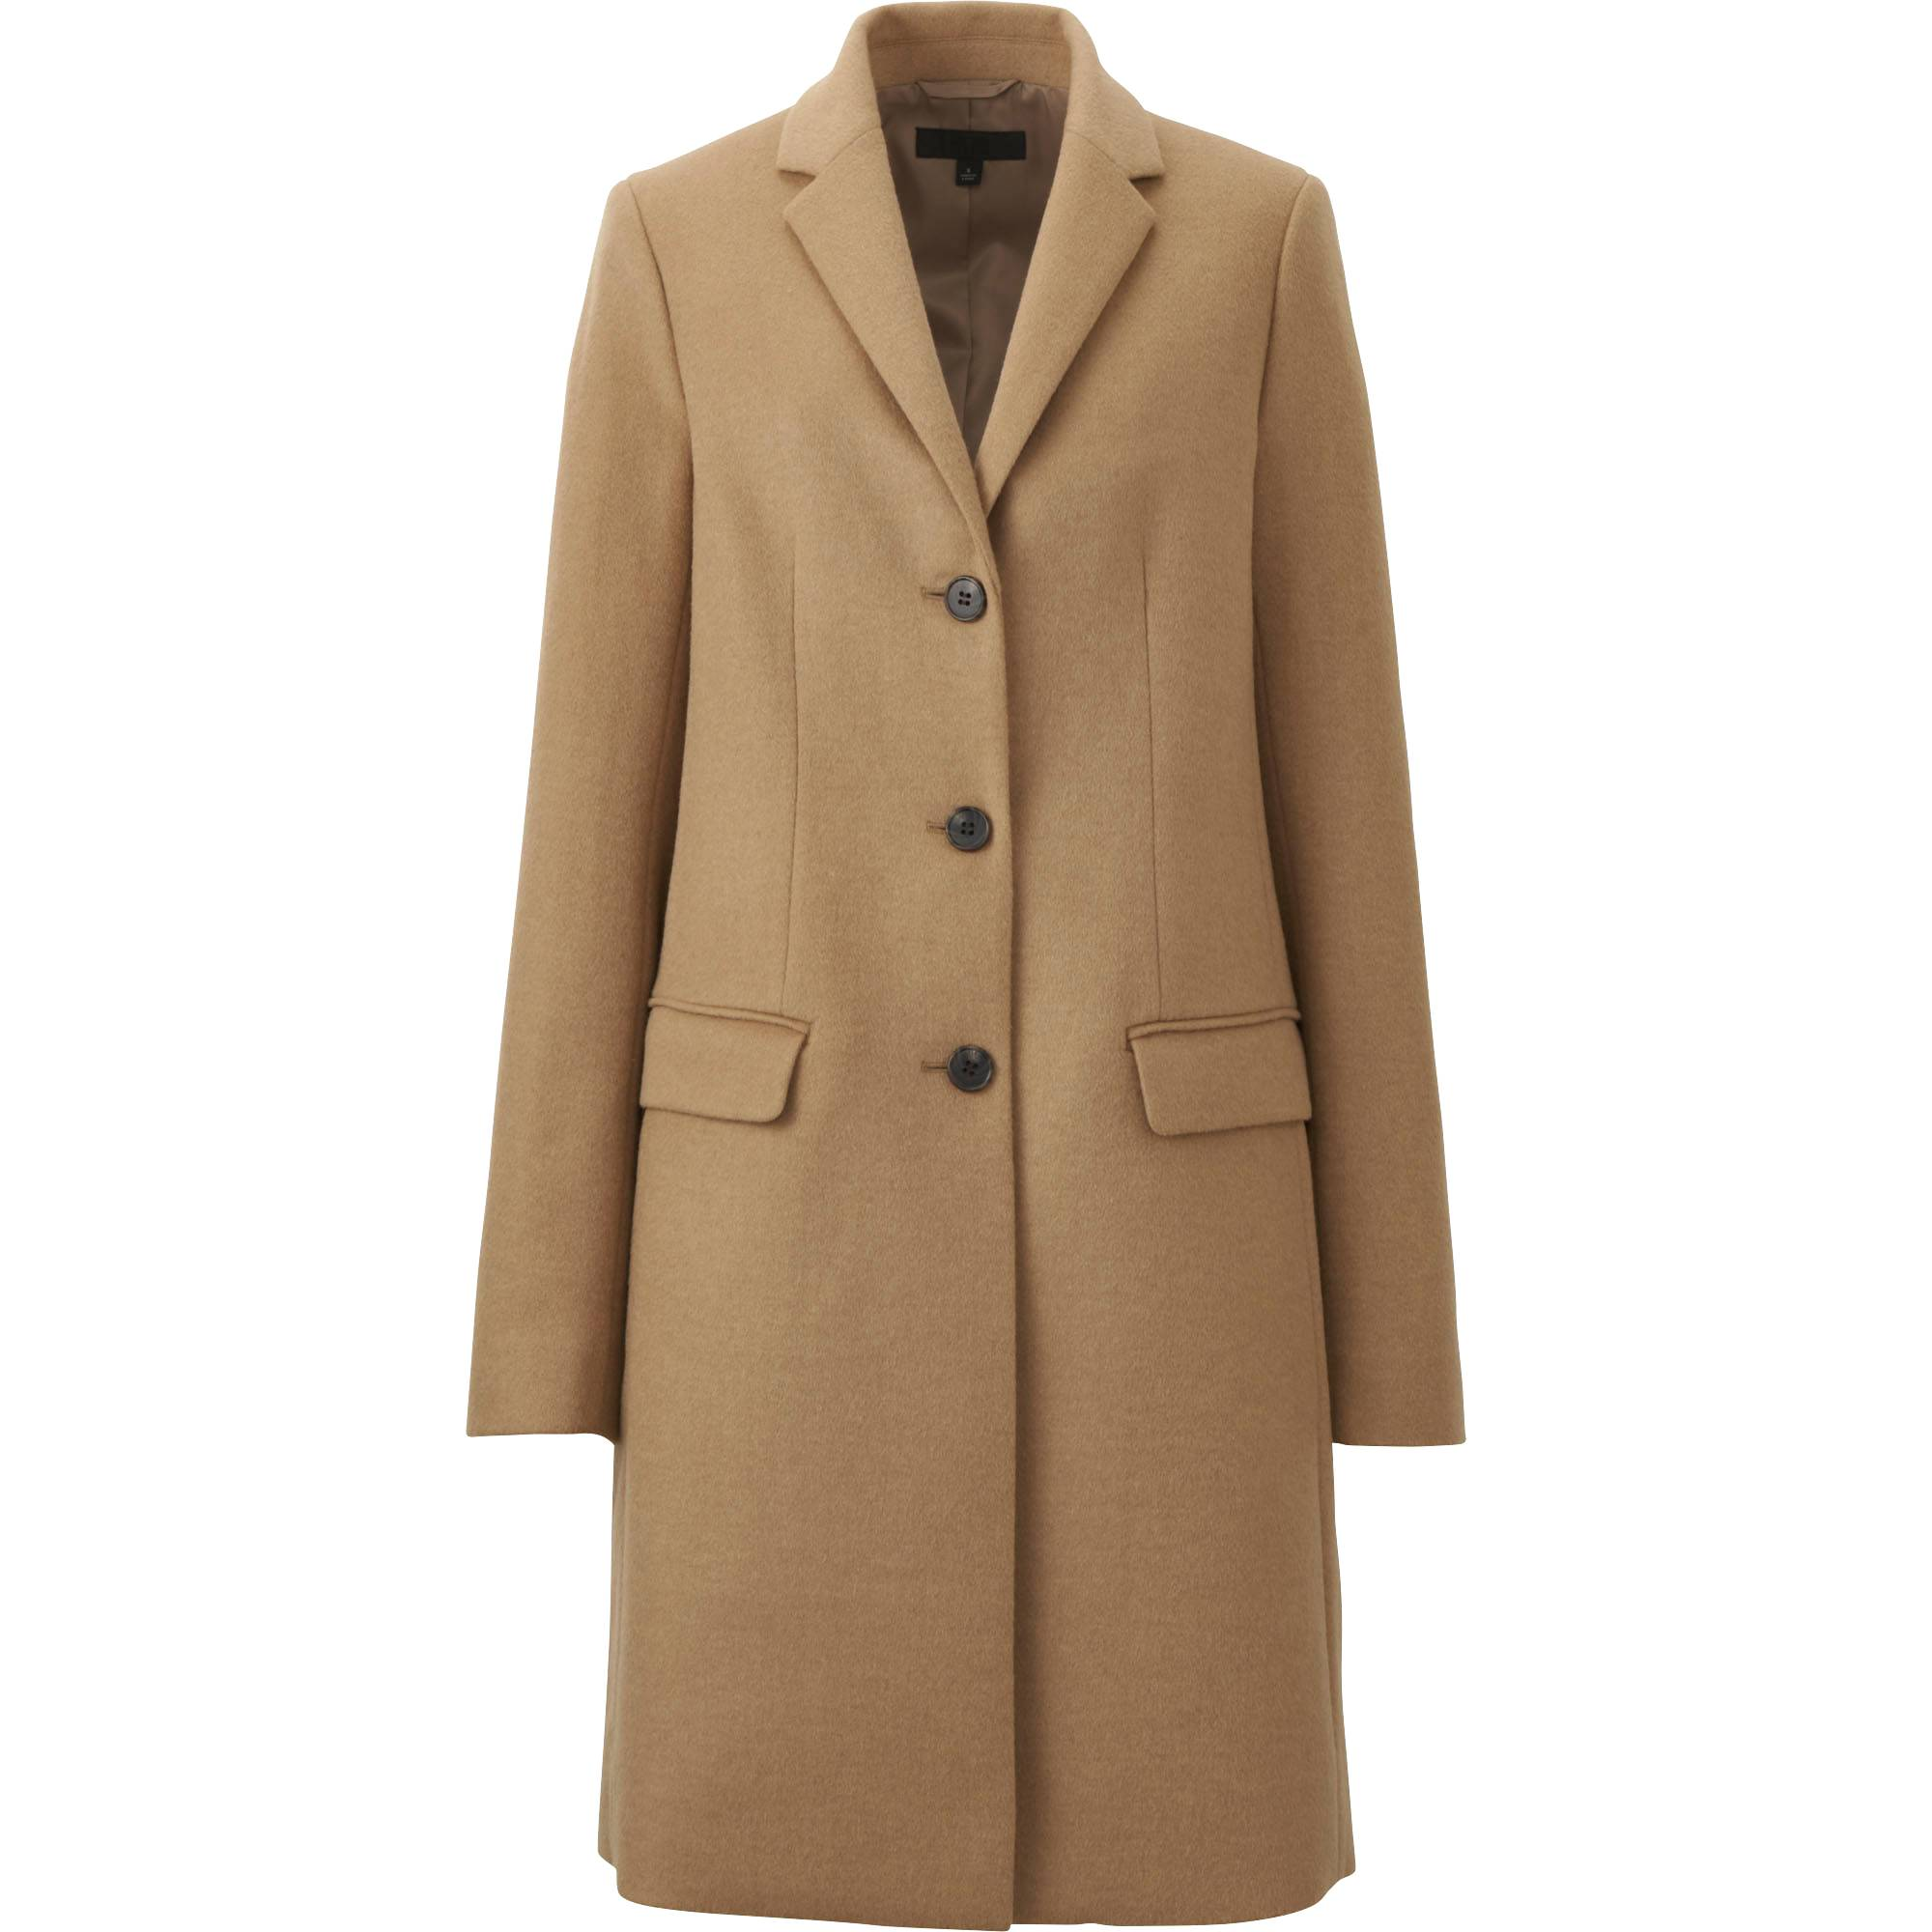 WOMEN WOOL CASHMERE CHESTER COAT | UNIQLO US